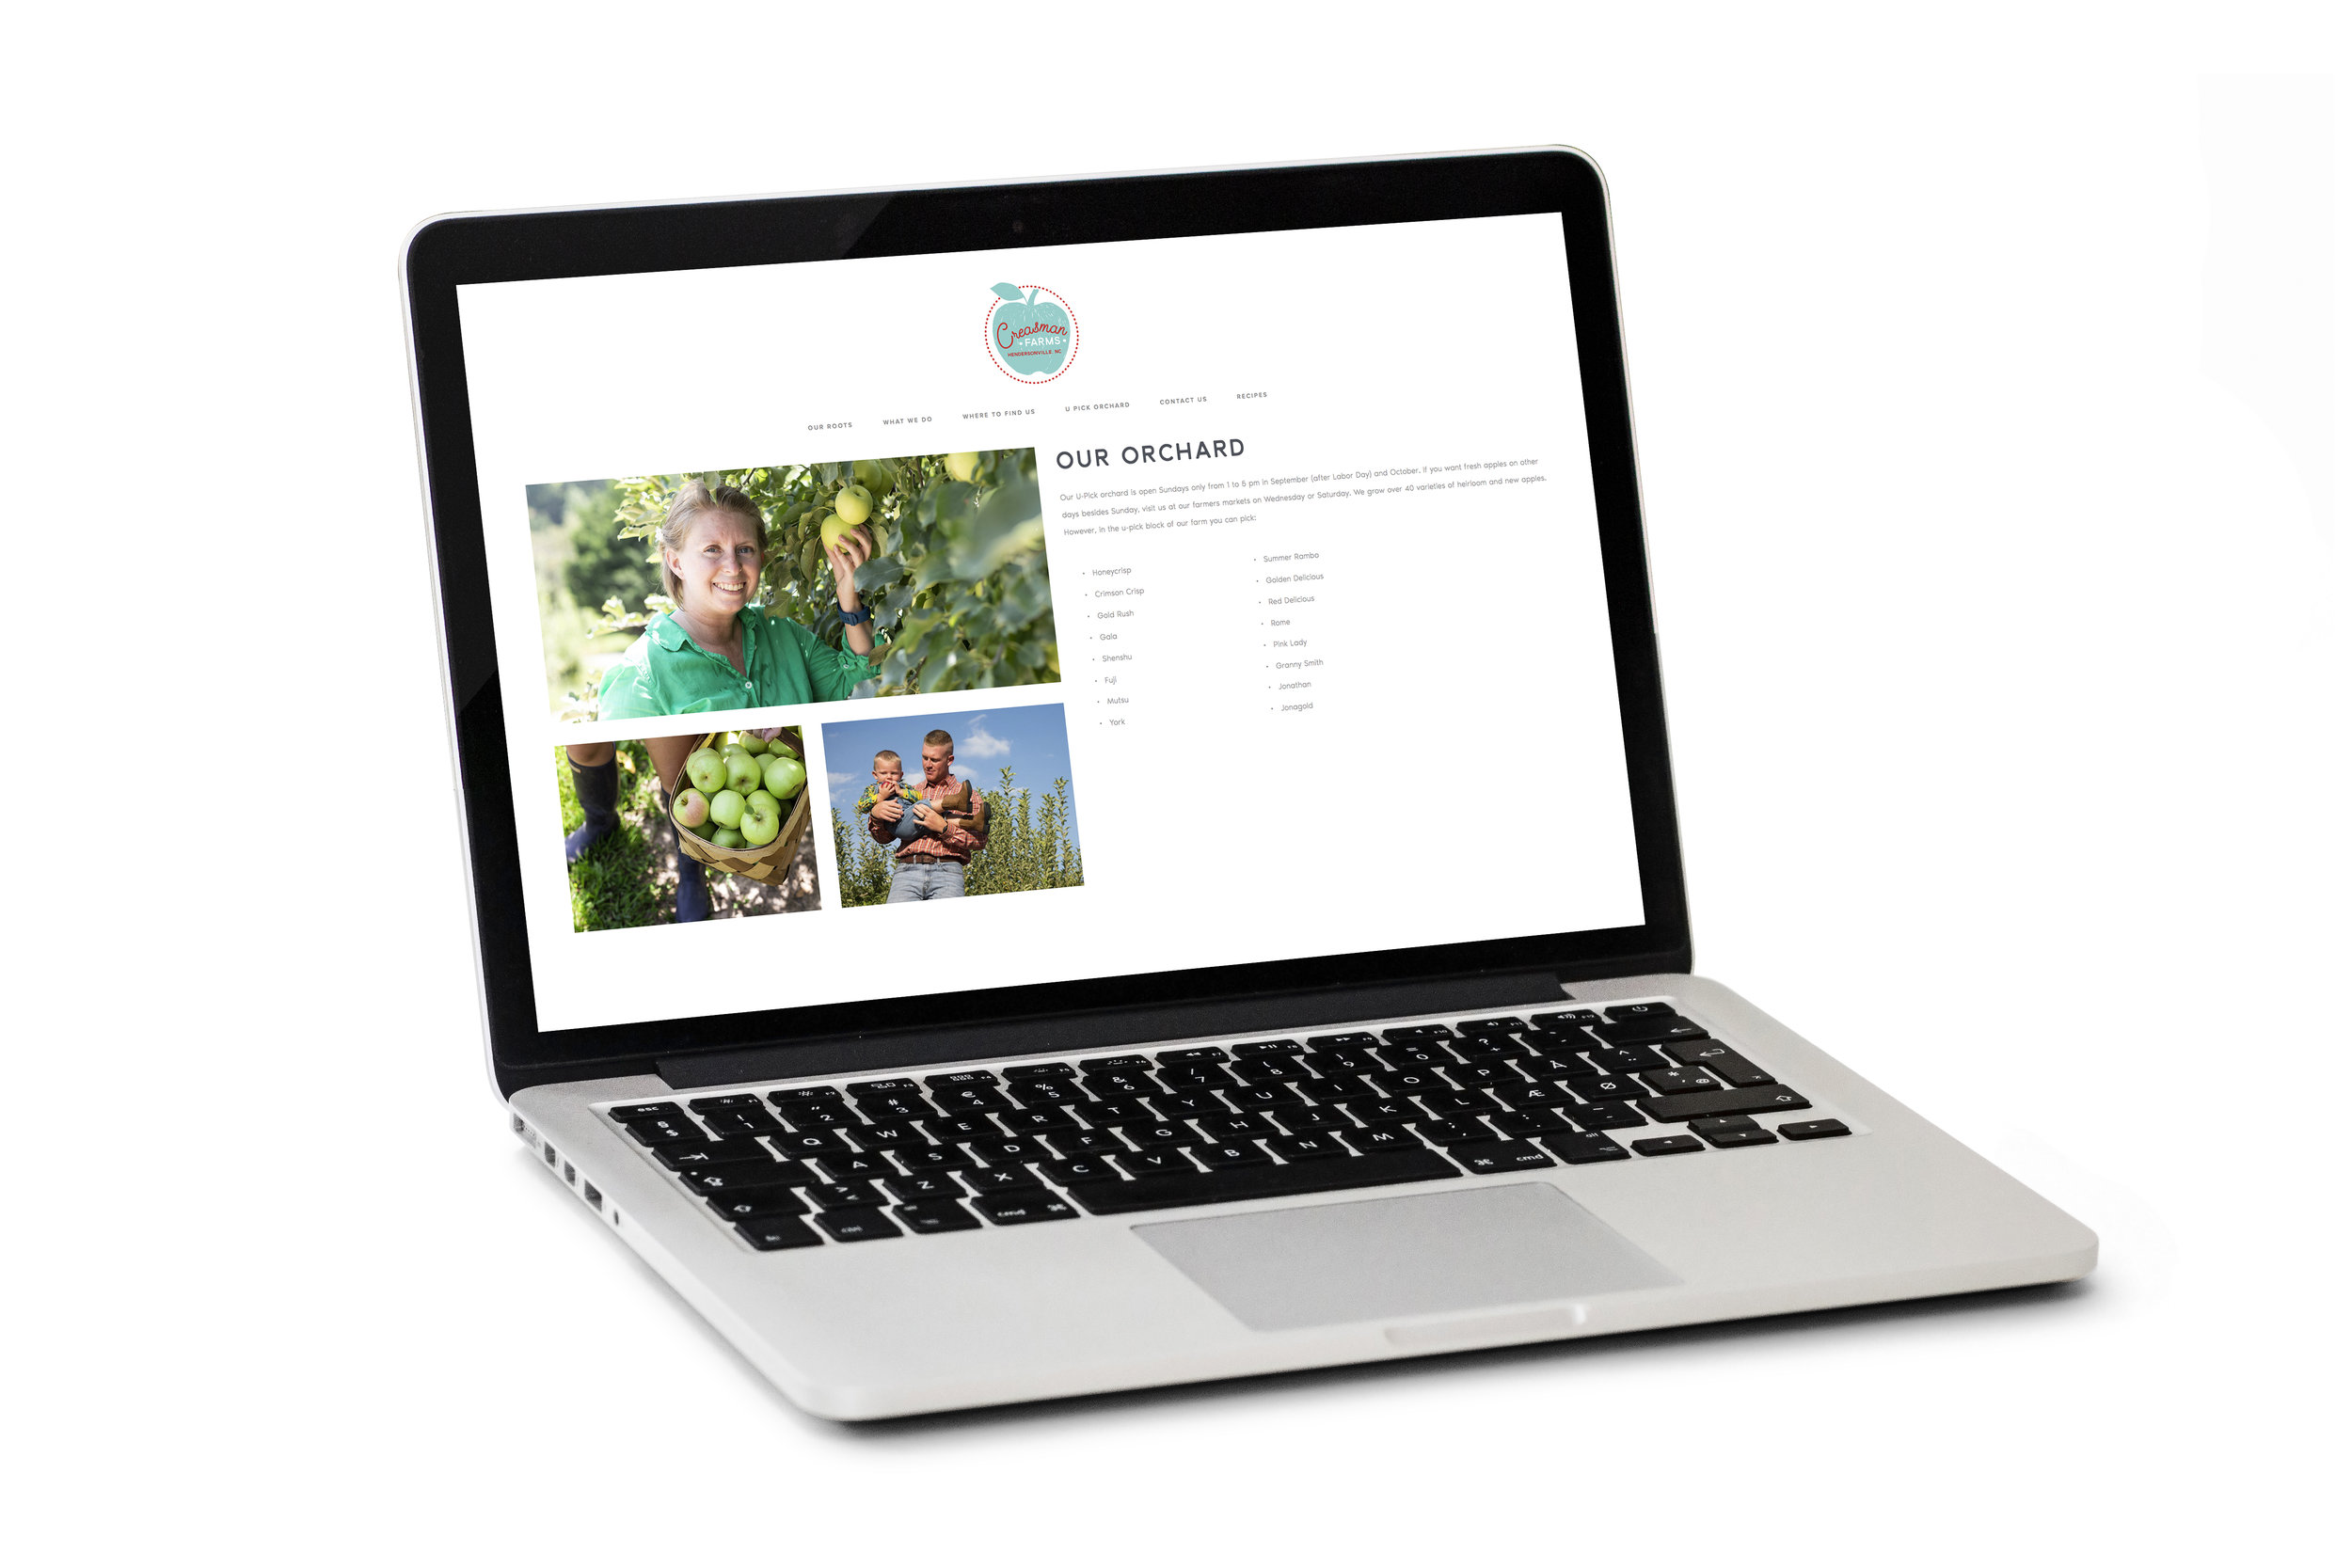 CF_website_mockup_orchard.jpg